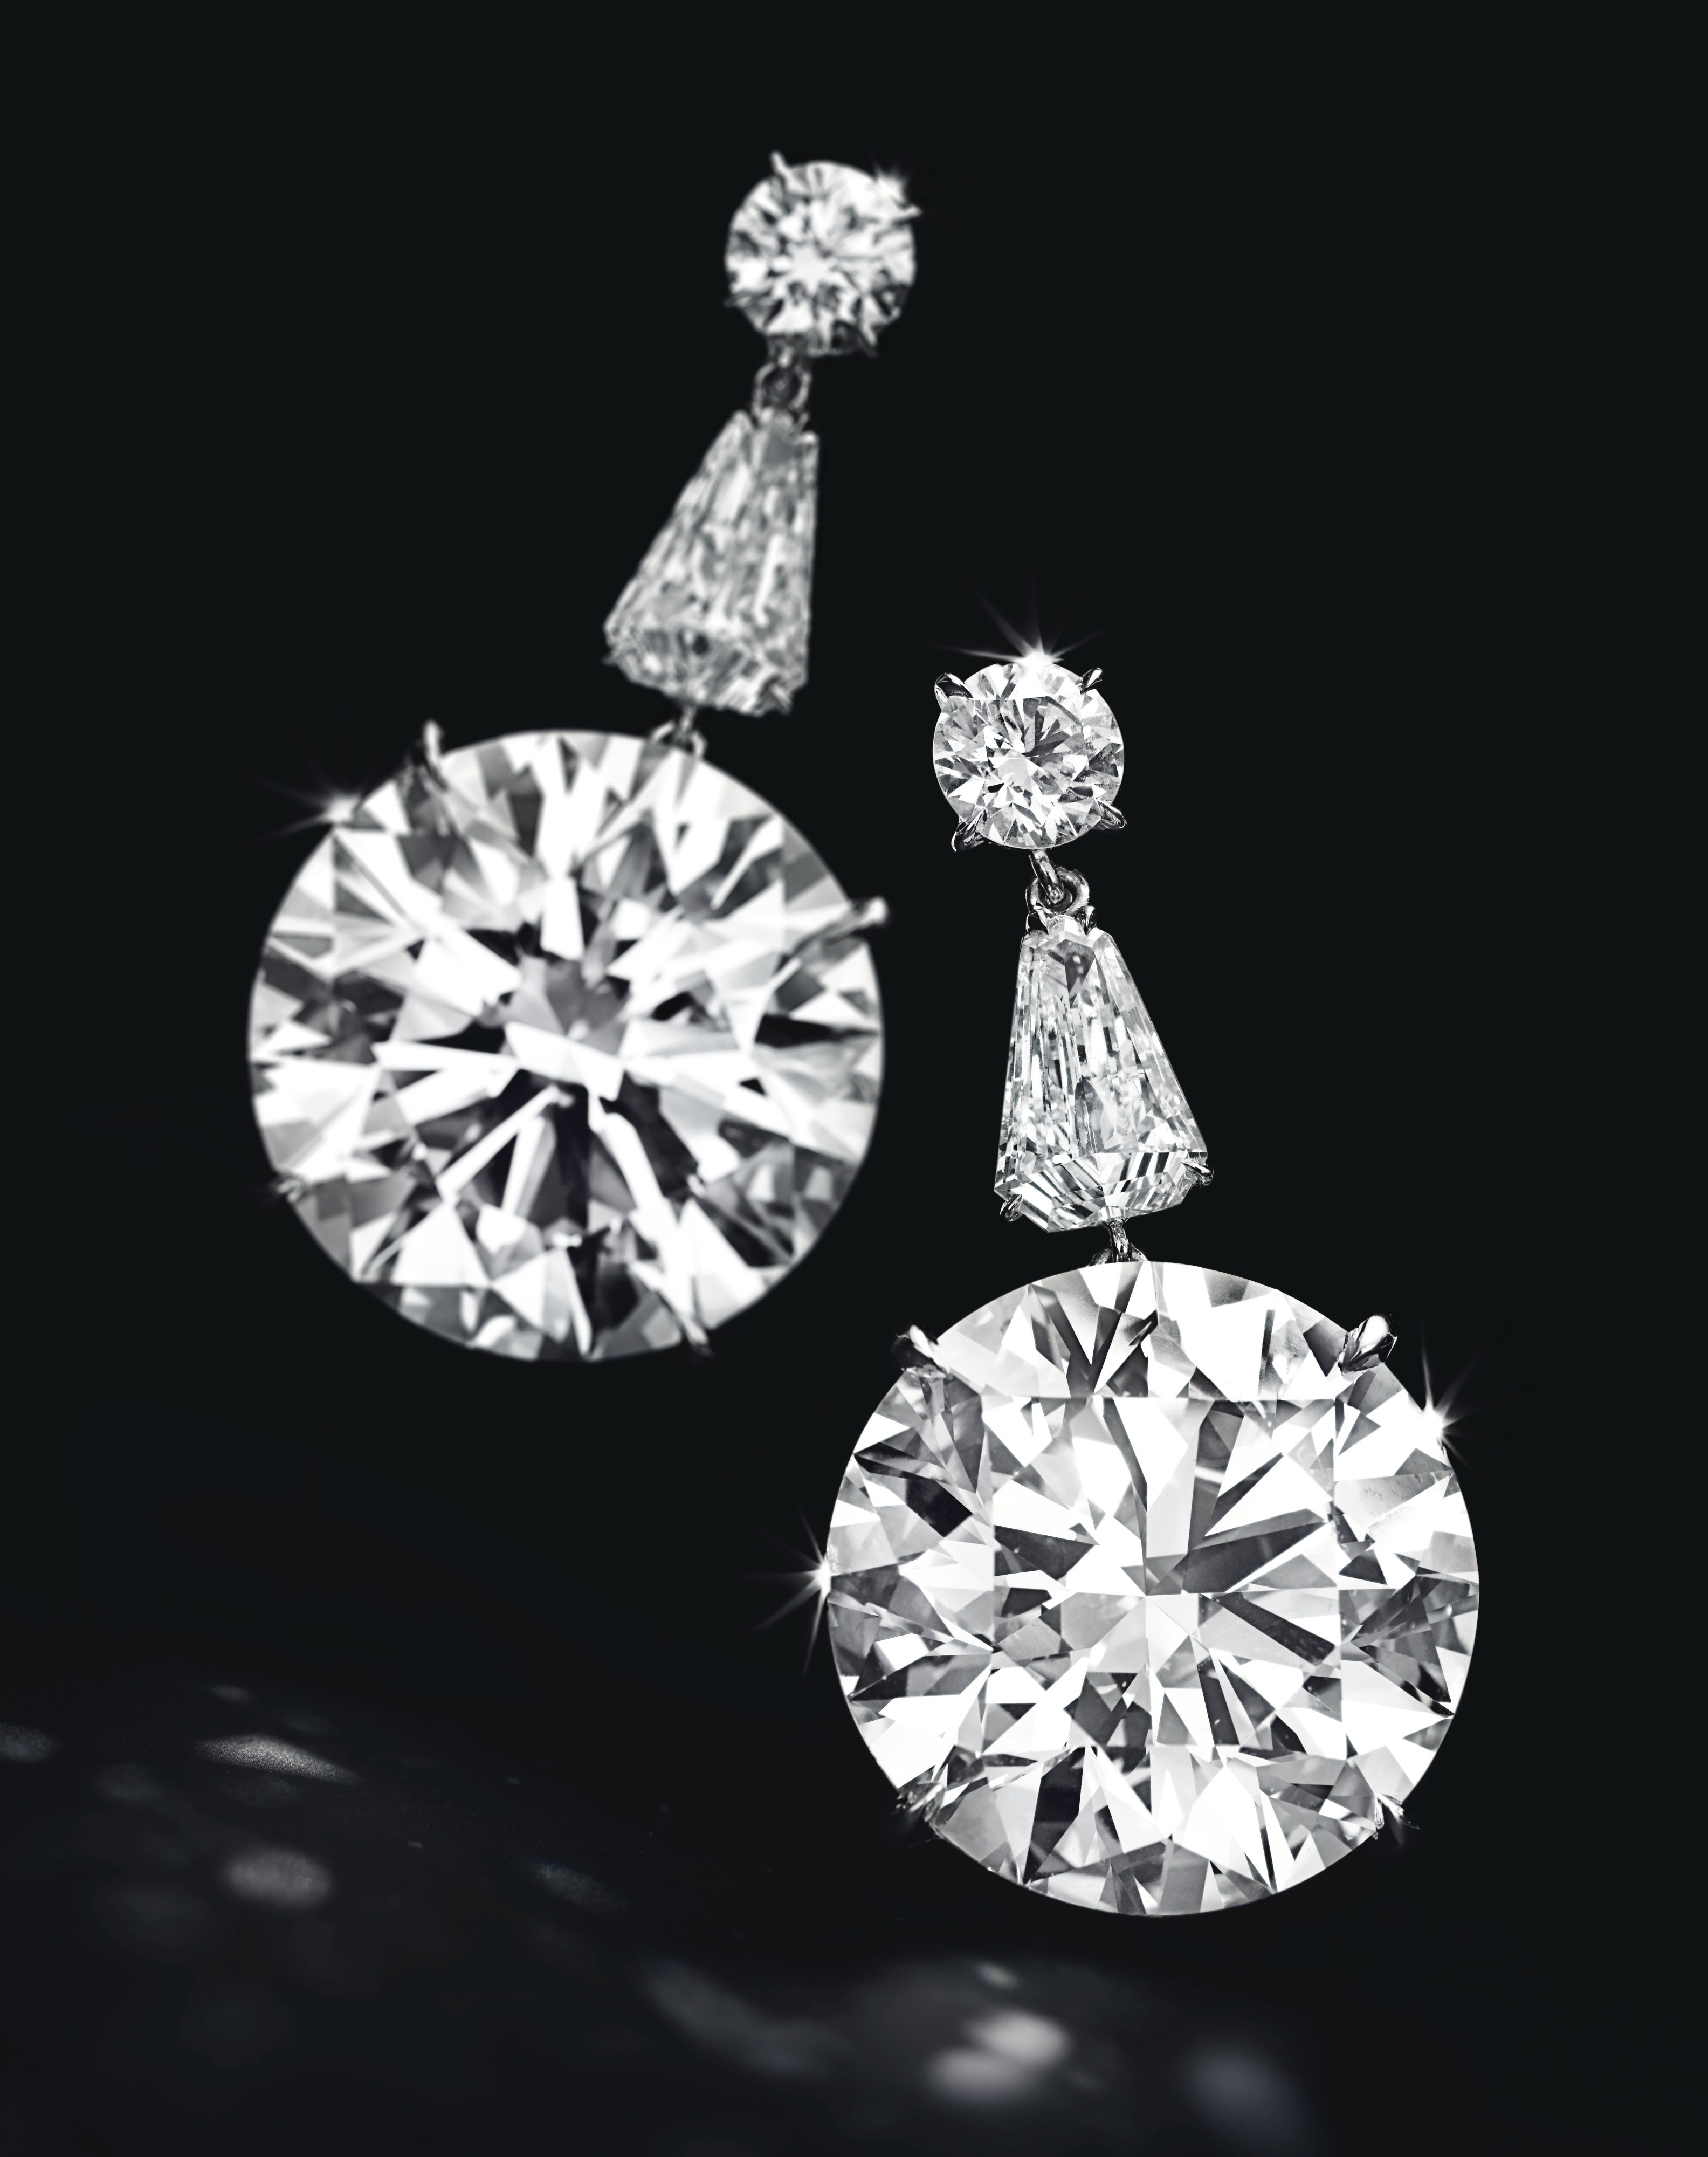 Circular Cut D Color Internally Flawless Diamonds Of 22 60 And 31 Carats Sold For